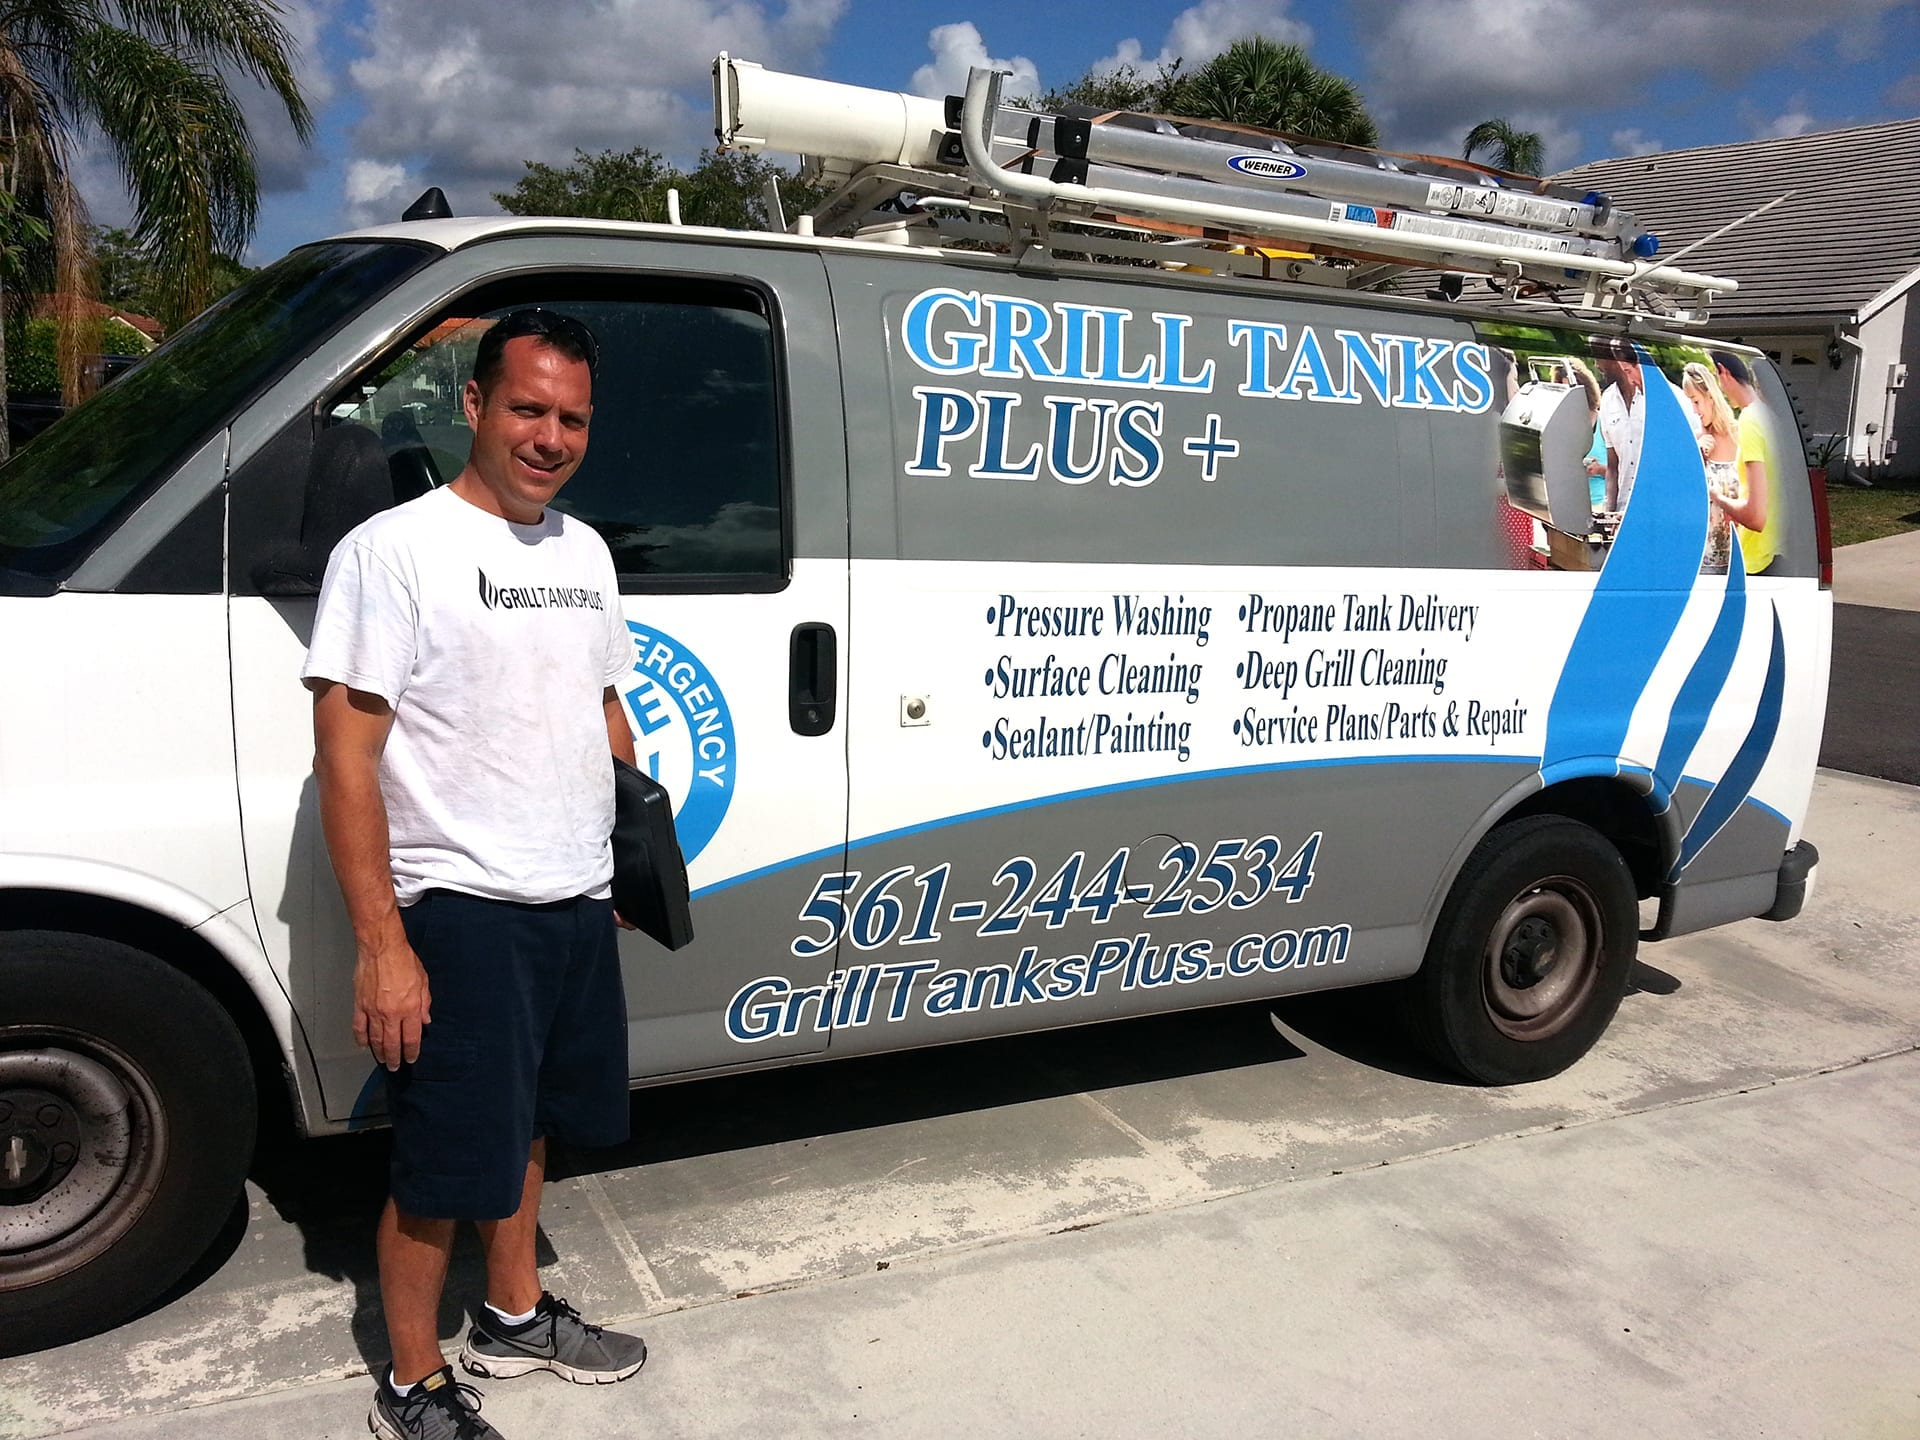 grill tanks plus service van